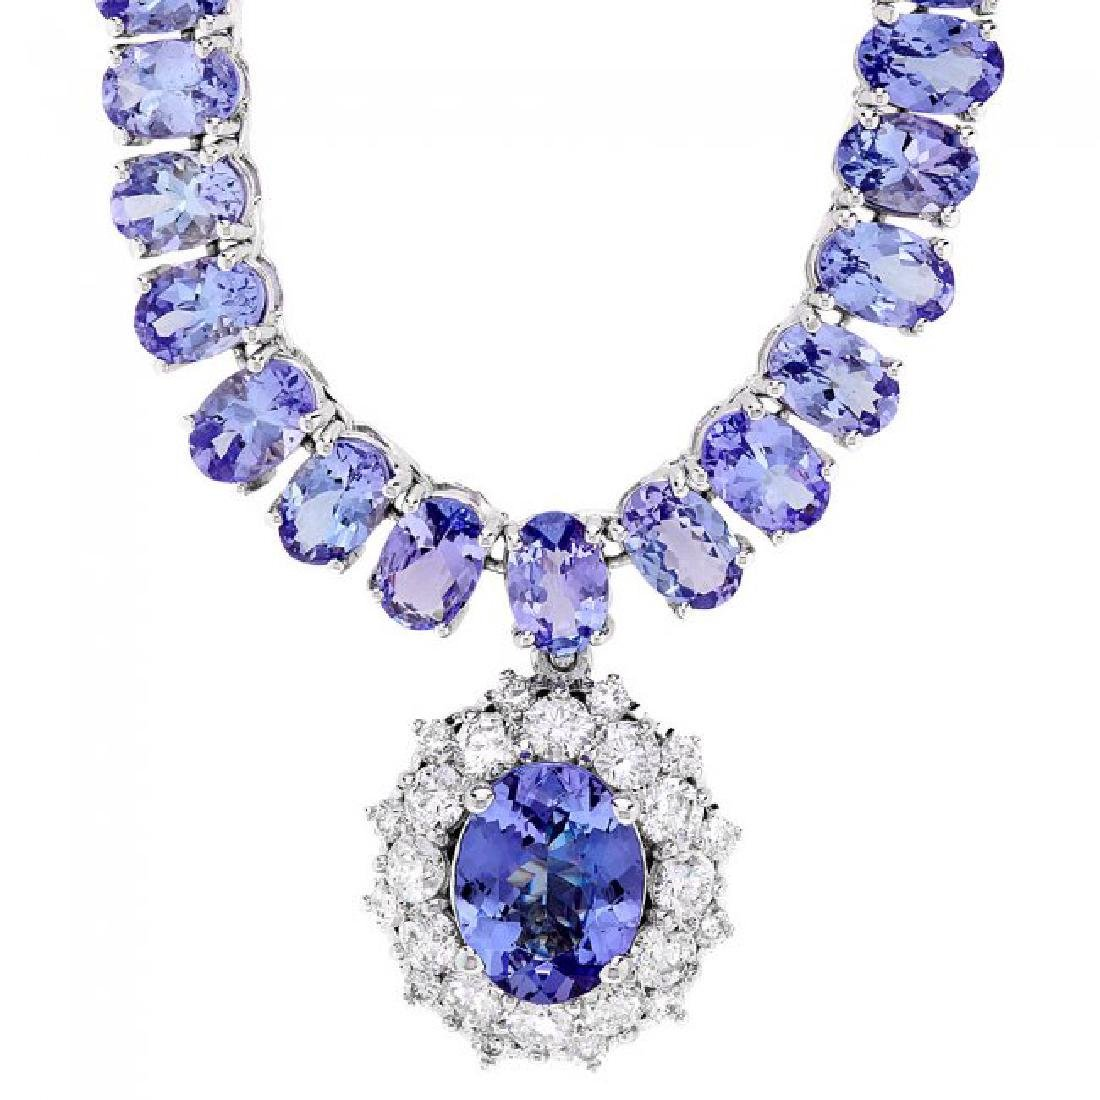 14k W Gold 45ct Tanzanite 1.35ct Diamond Necklace - 2